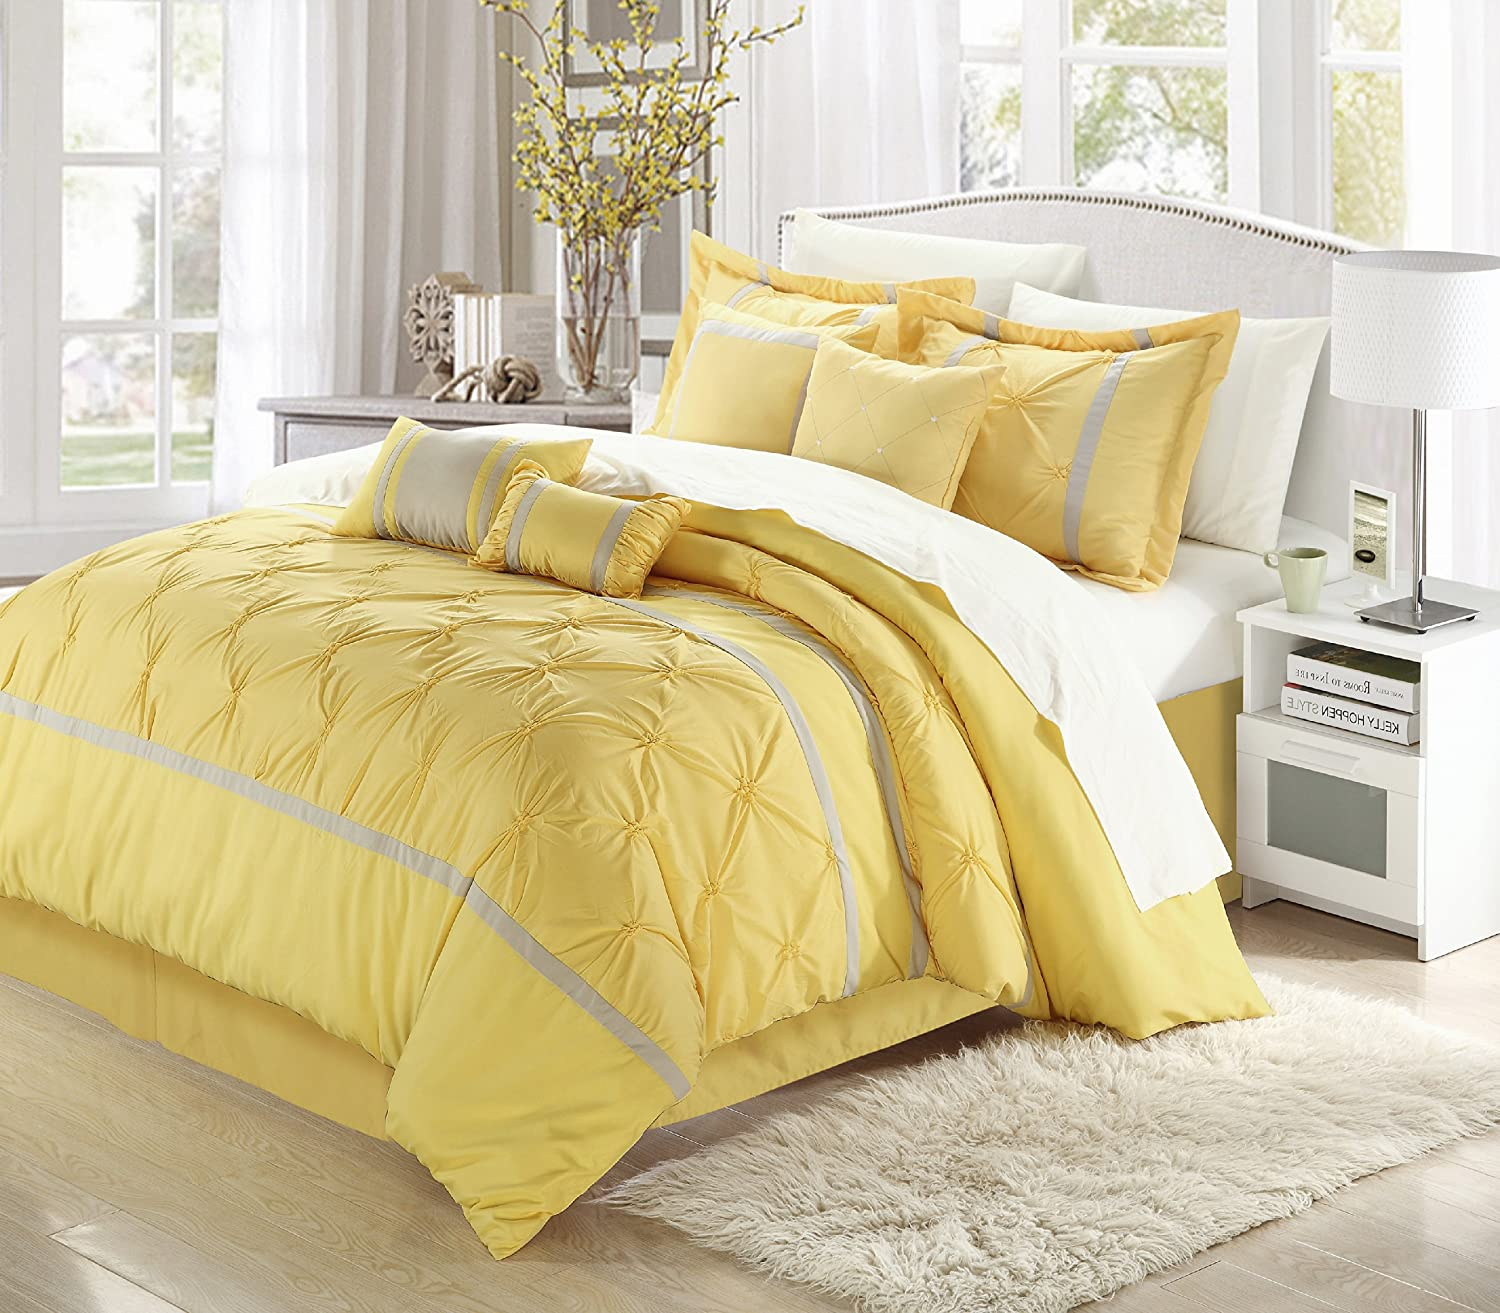 Chic Home Vermont 8-Piece Bedding Comforter Set Cozy and Elegant (Queen, Yellow/Gray)